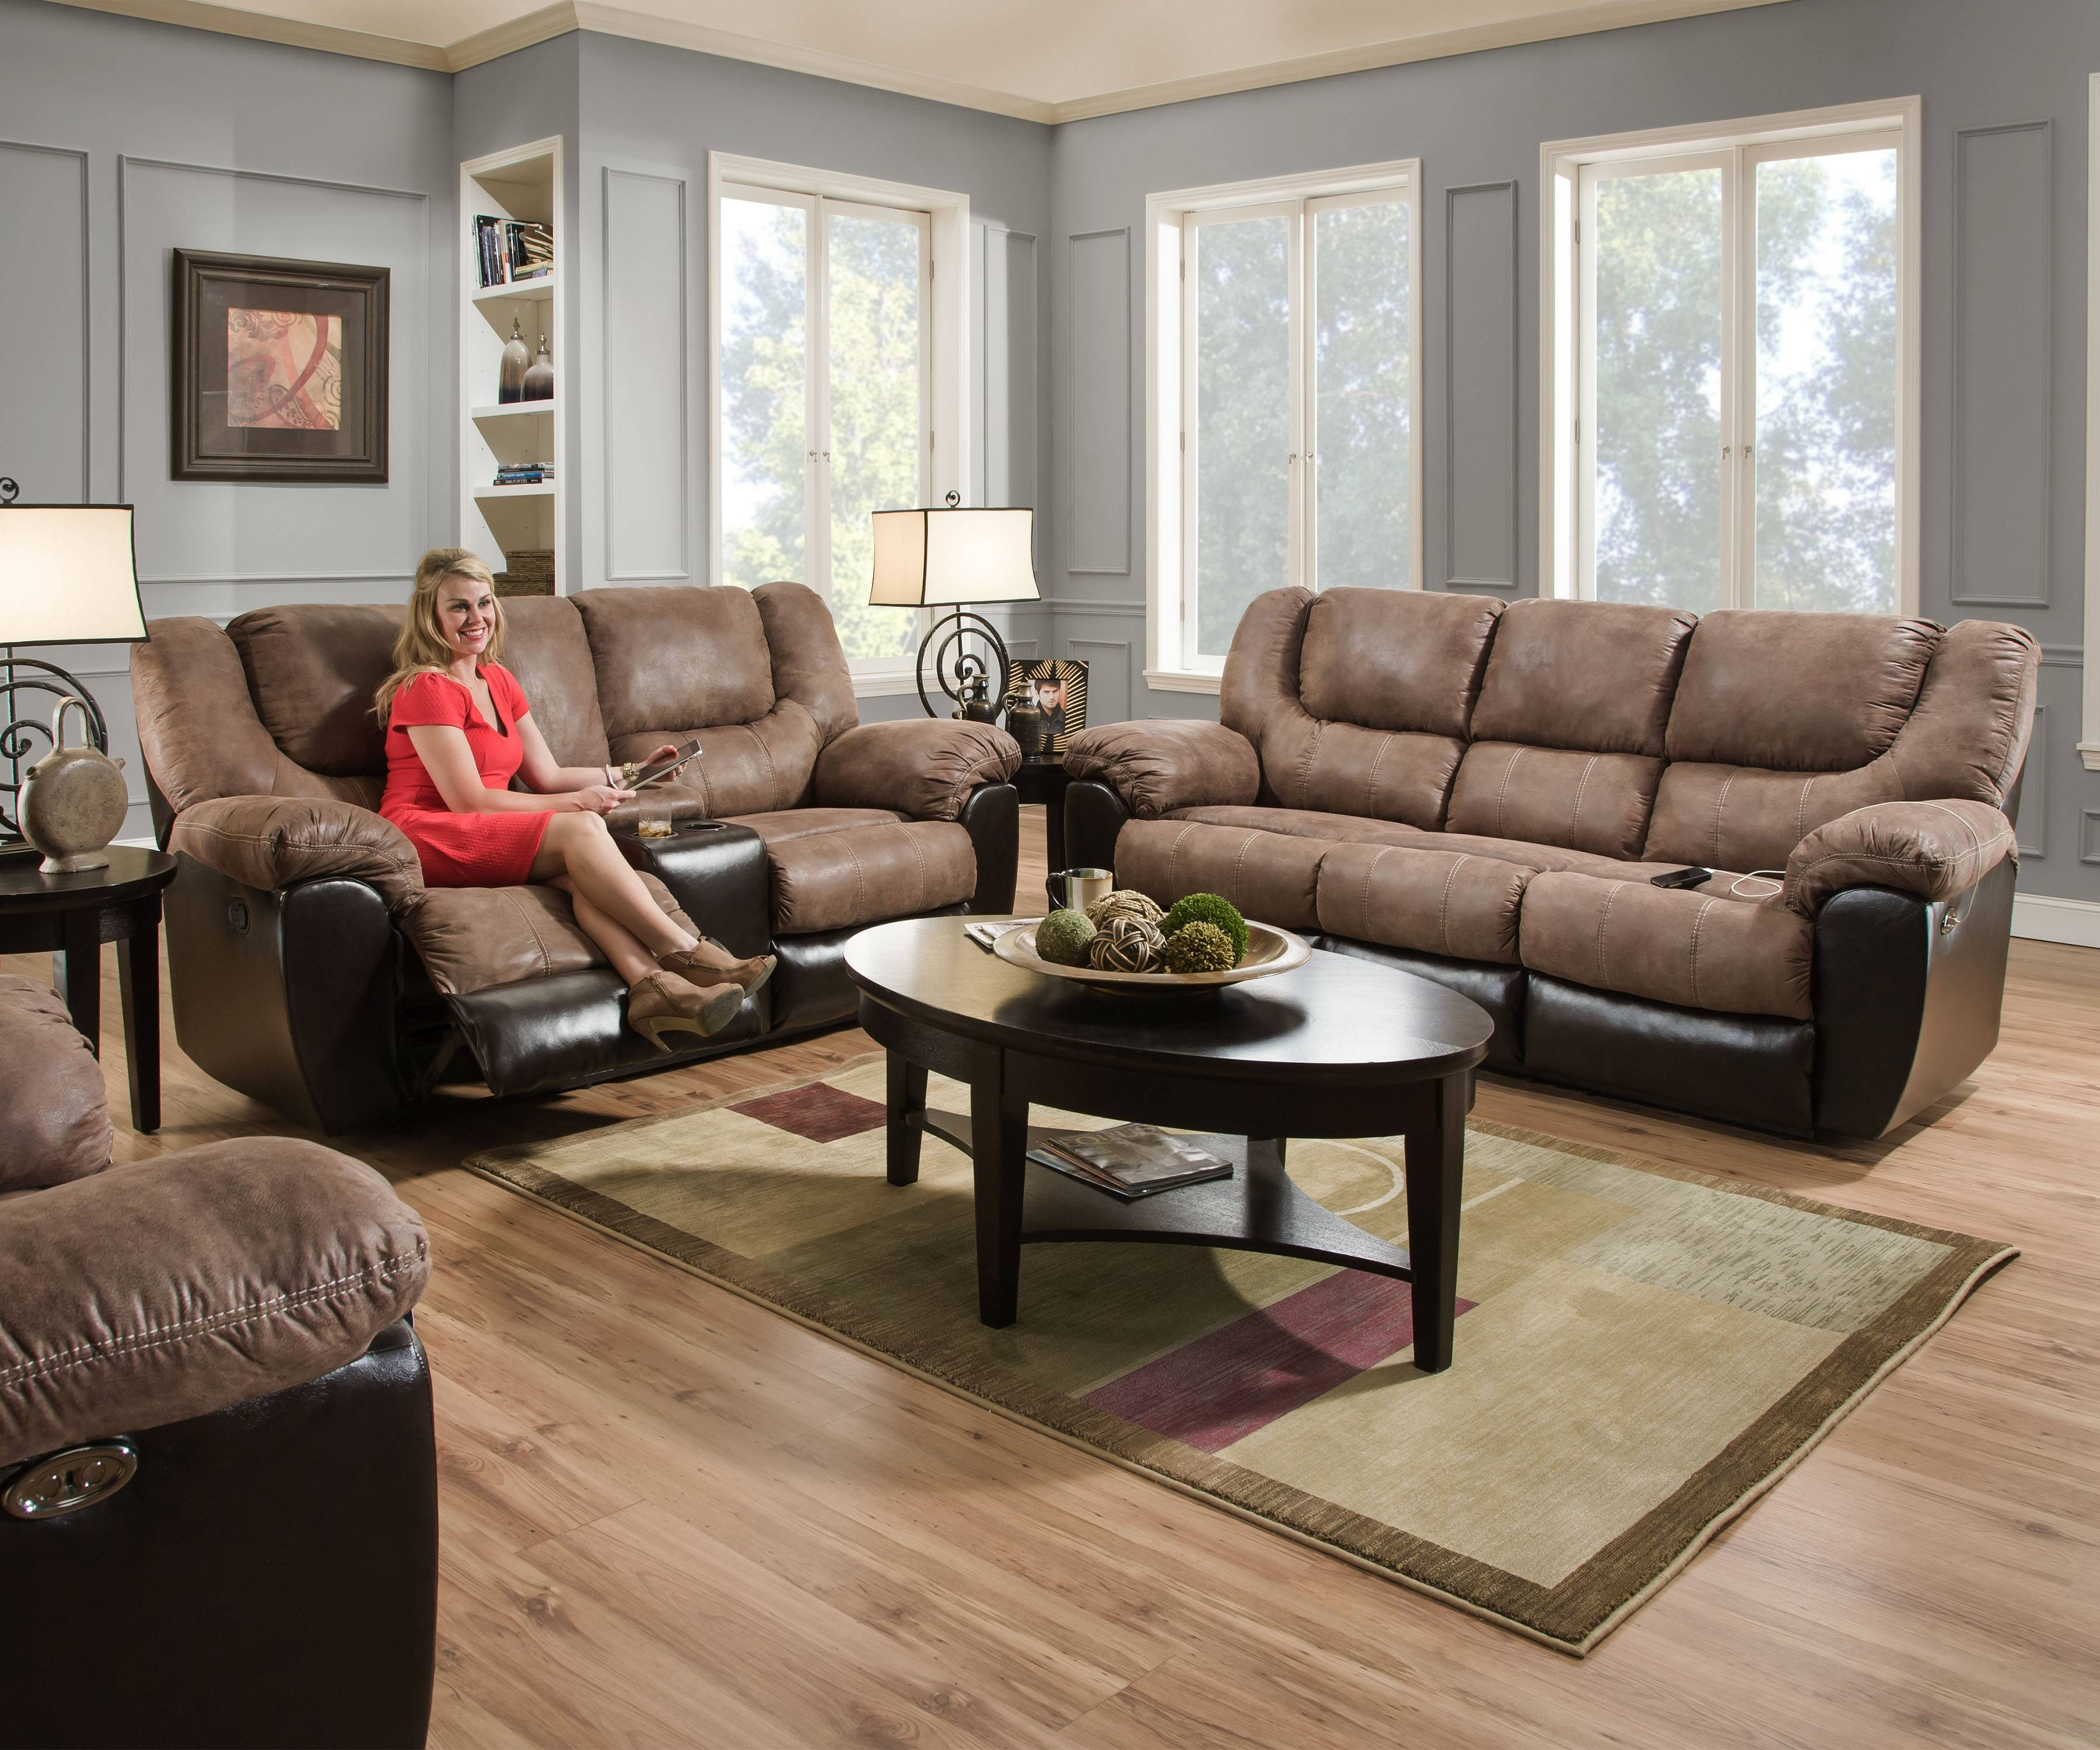 50431 - United Furniture Industries with Simmons Sofas And Loveseats (Image 5 of 15)